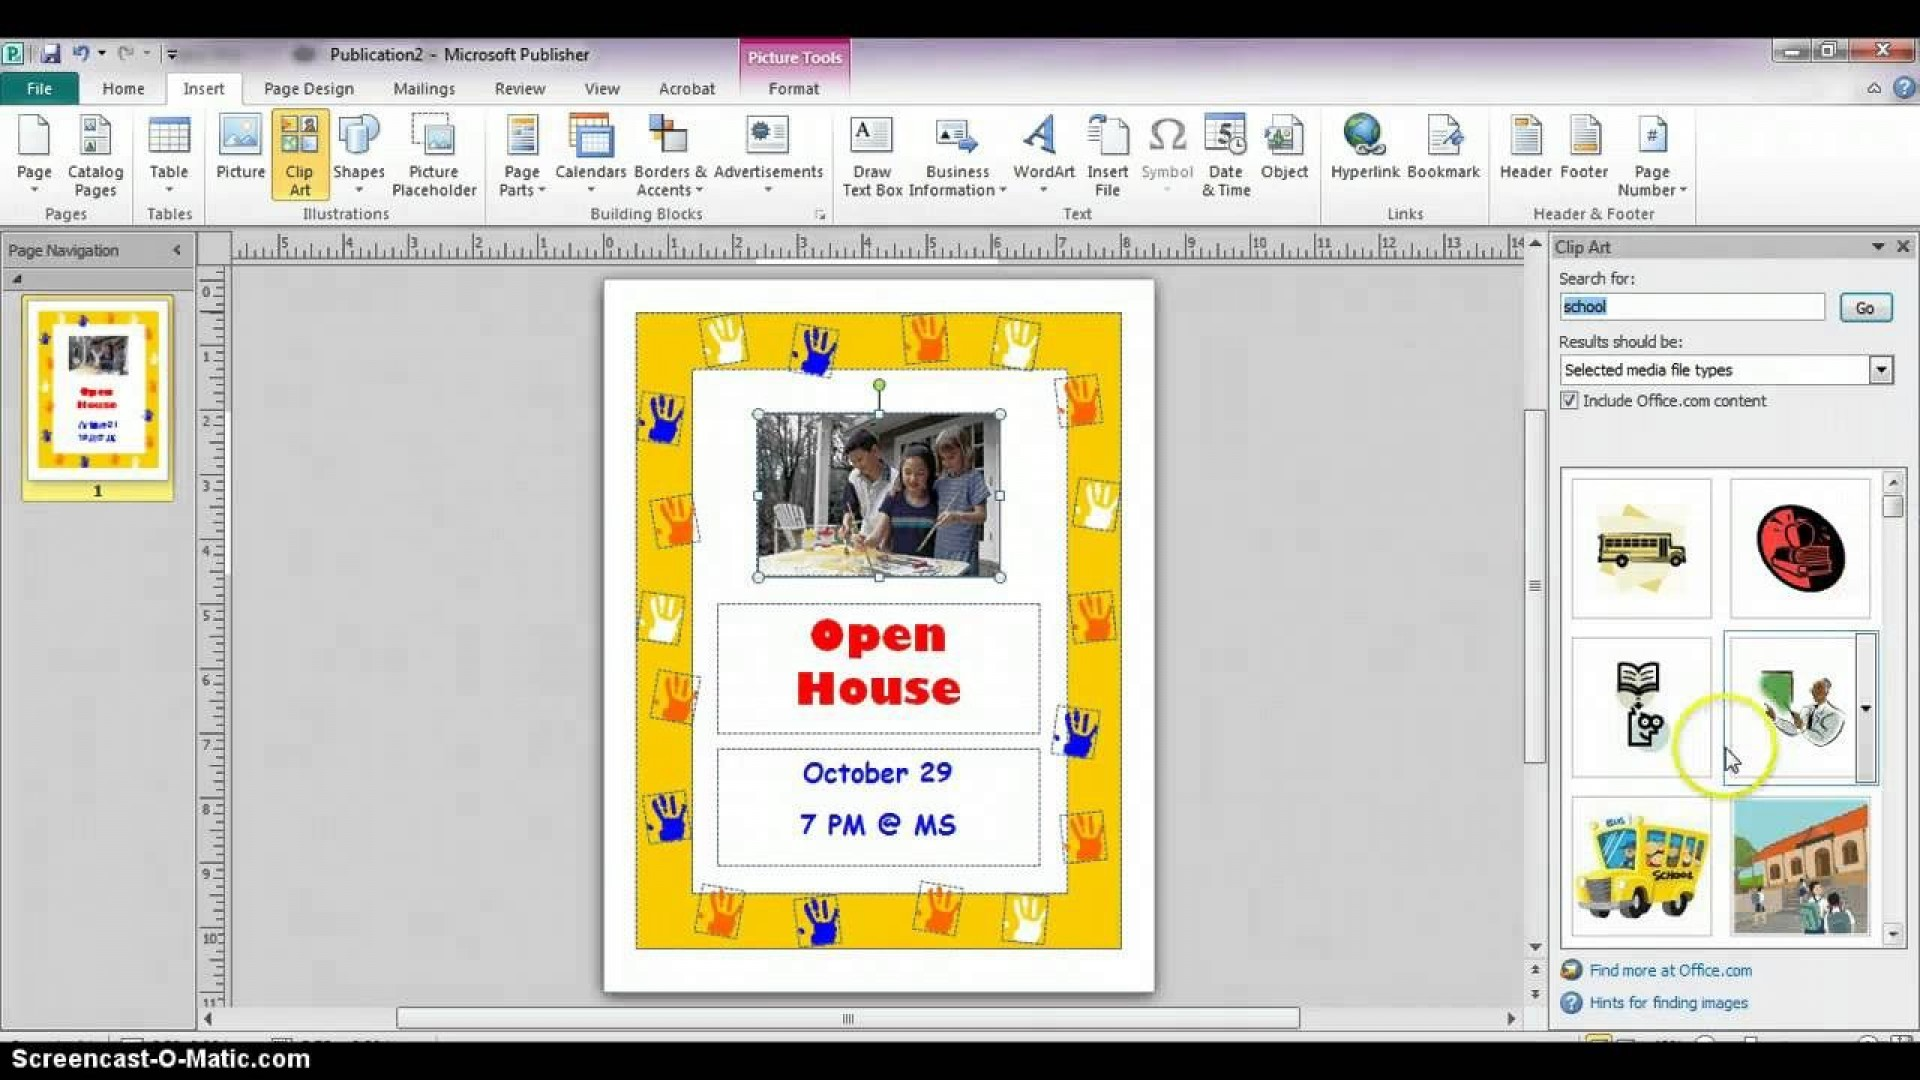 007 Archaicawful Microsoft Publisher Flyer Template Photo  Office Free Event Download1920